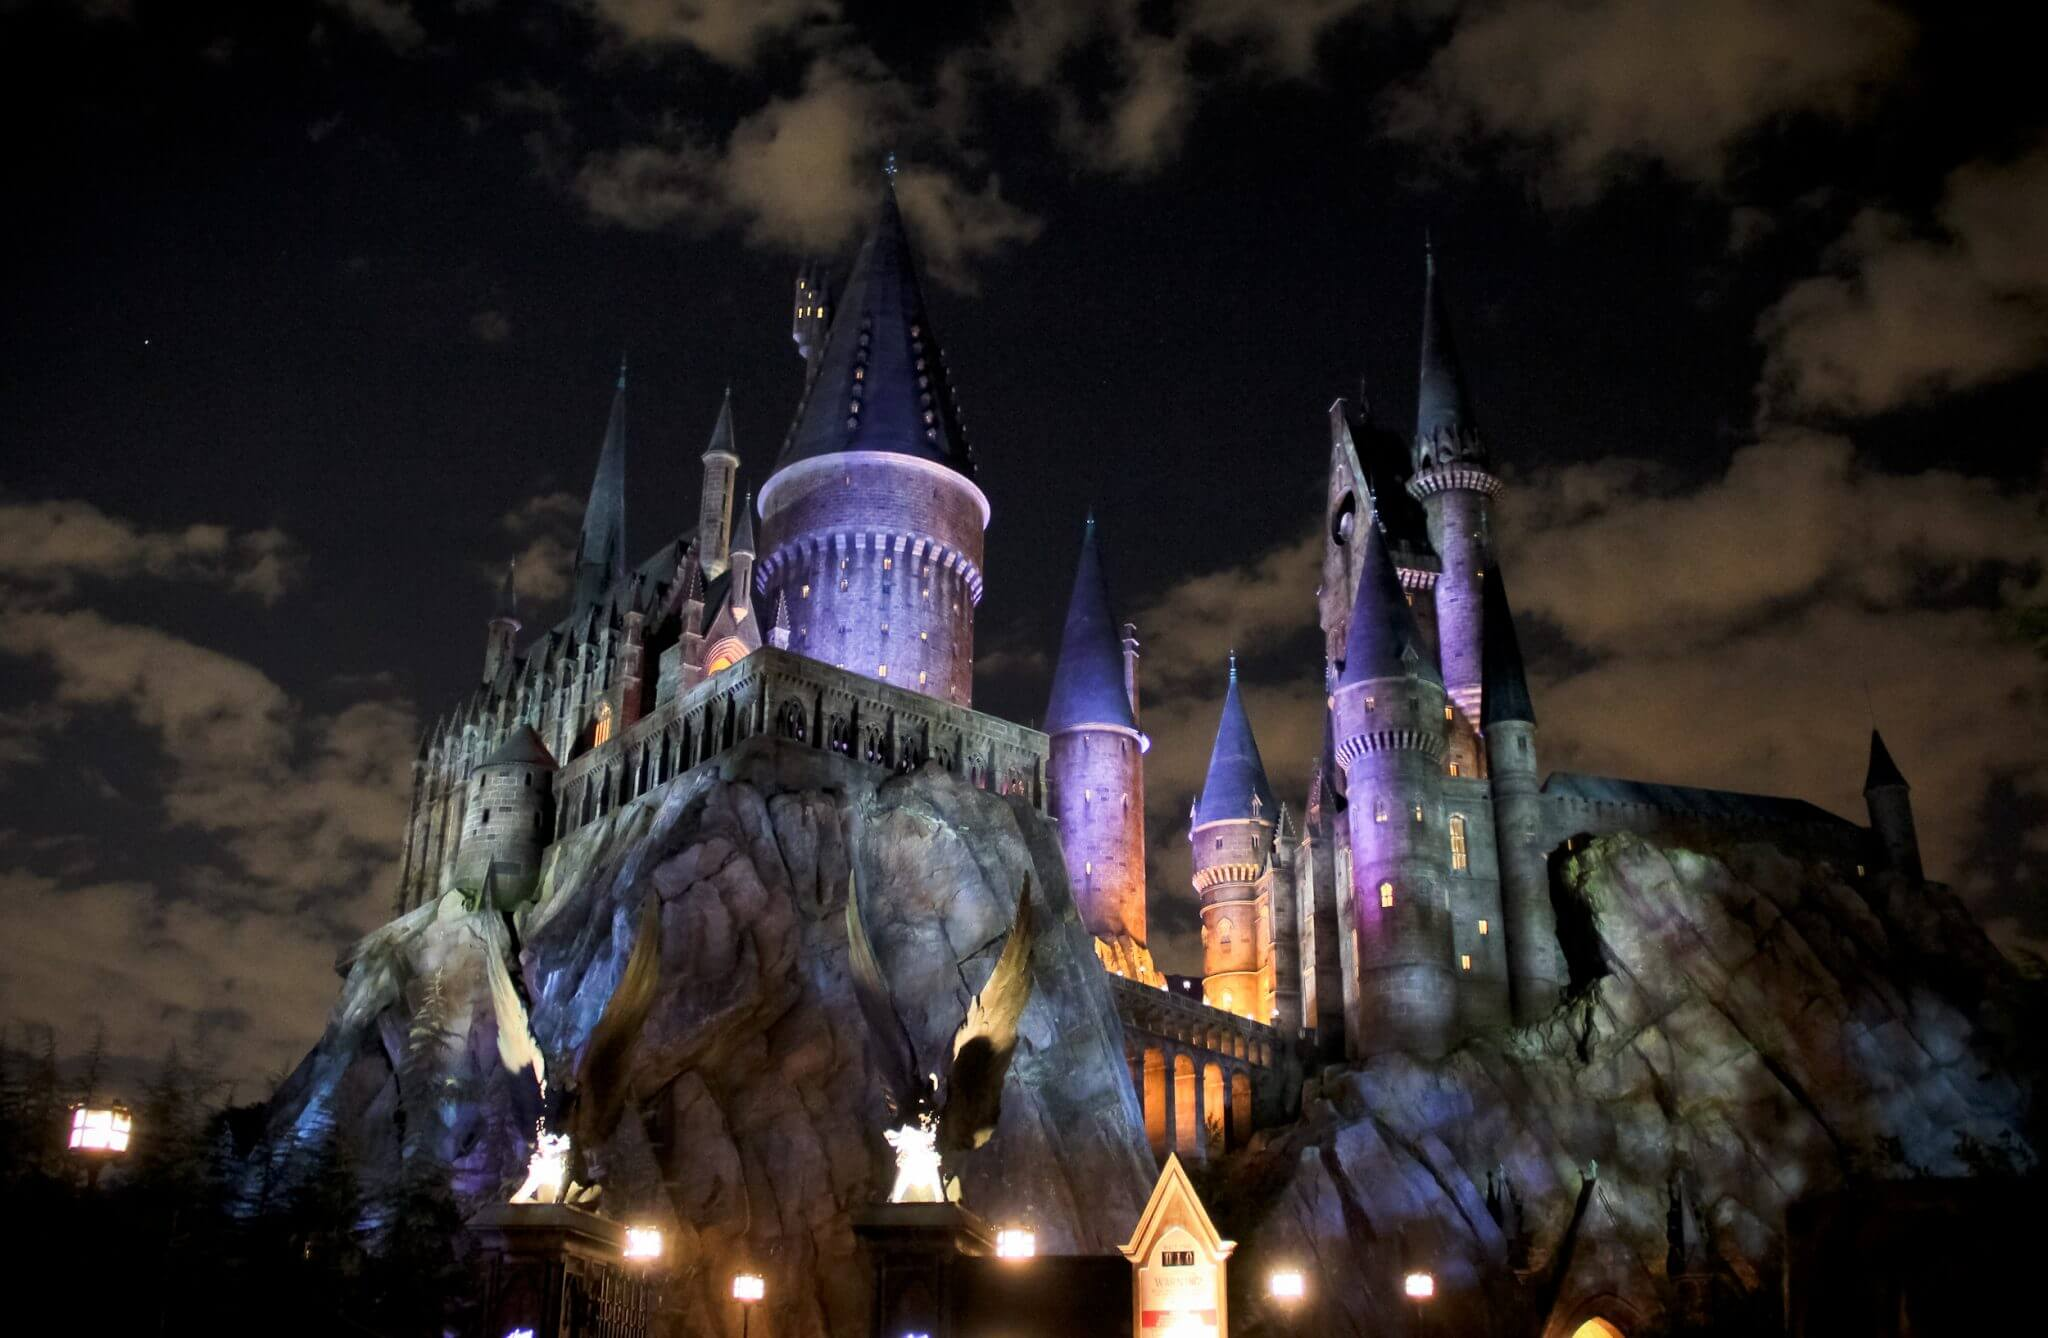 Parque Mundo do Harry Potter em Orlando: Castelo de Hogwarts